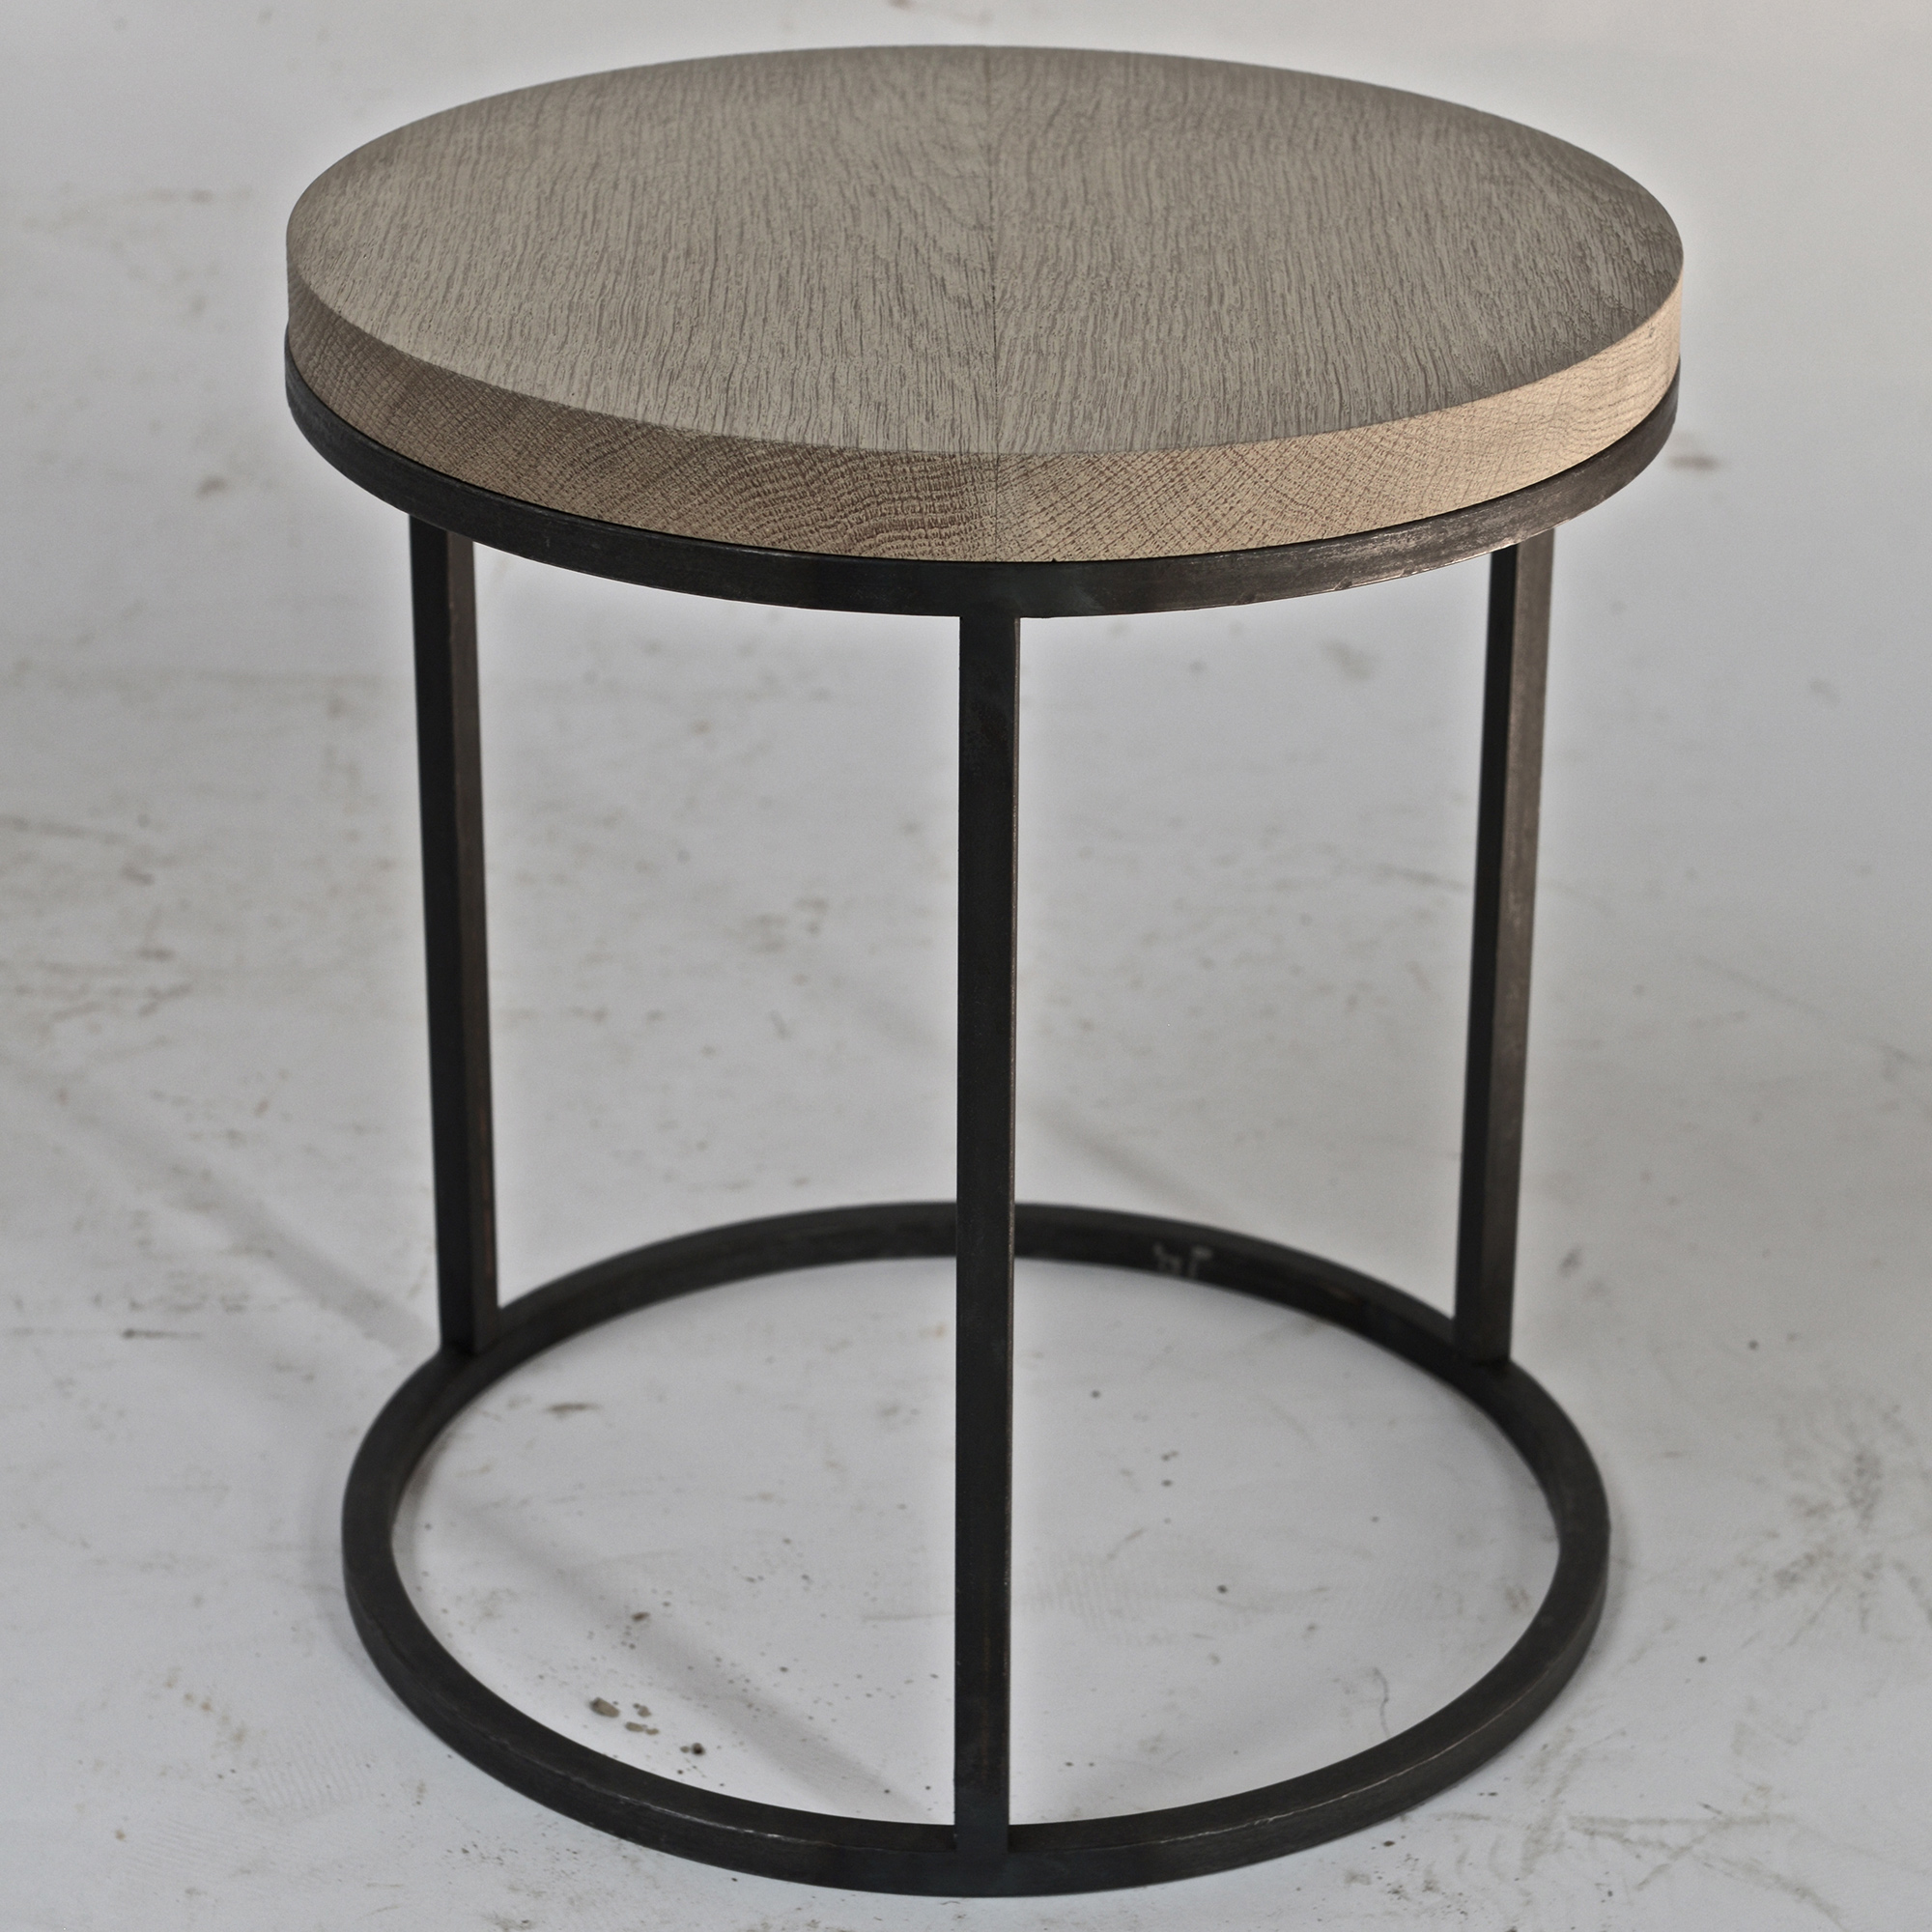 shelf side table the super free target black round oak top omero home christmas paper tablecloths second hand coffee chest cabinet sauder beginnings end ikea small glass diy mid